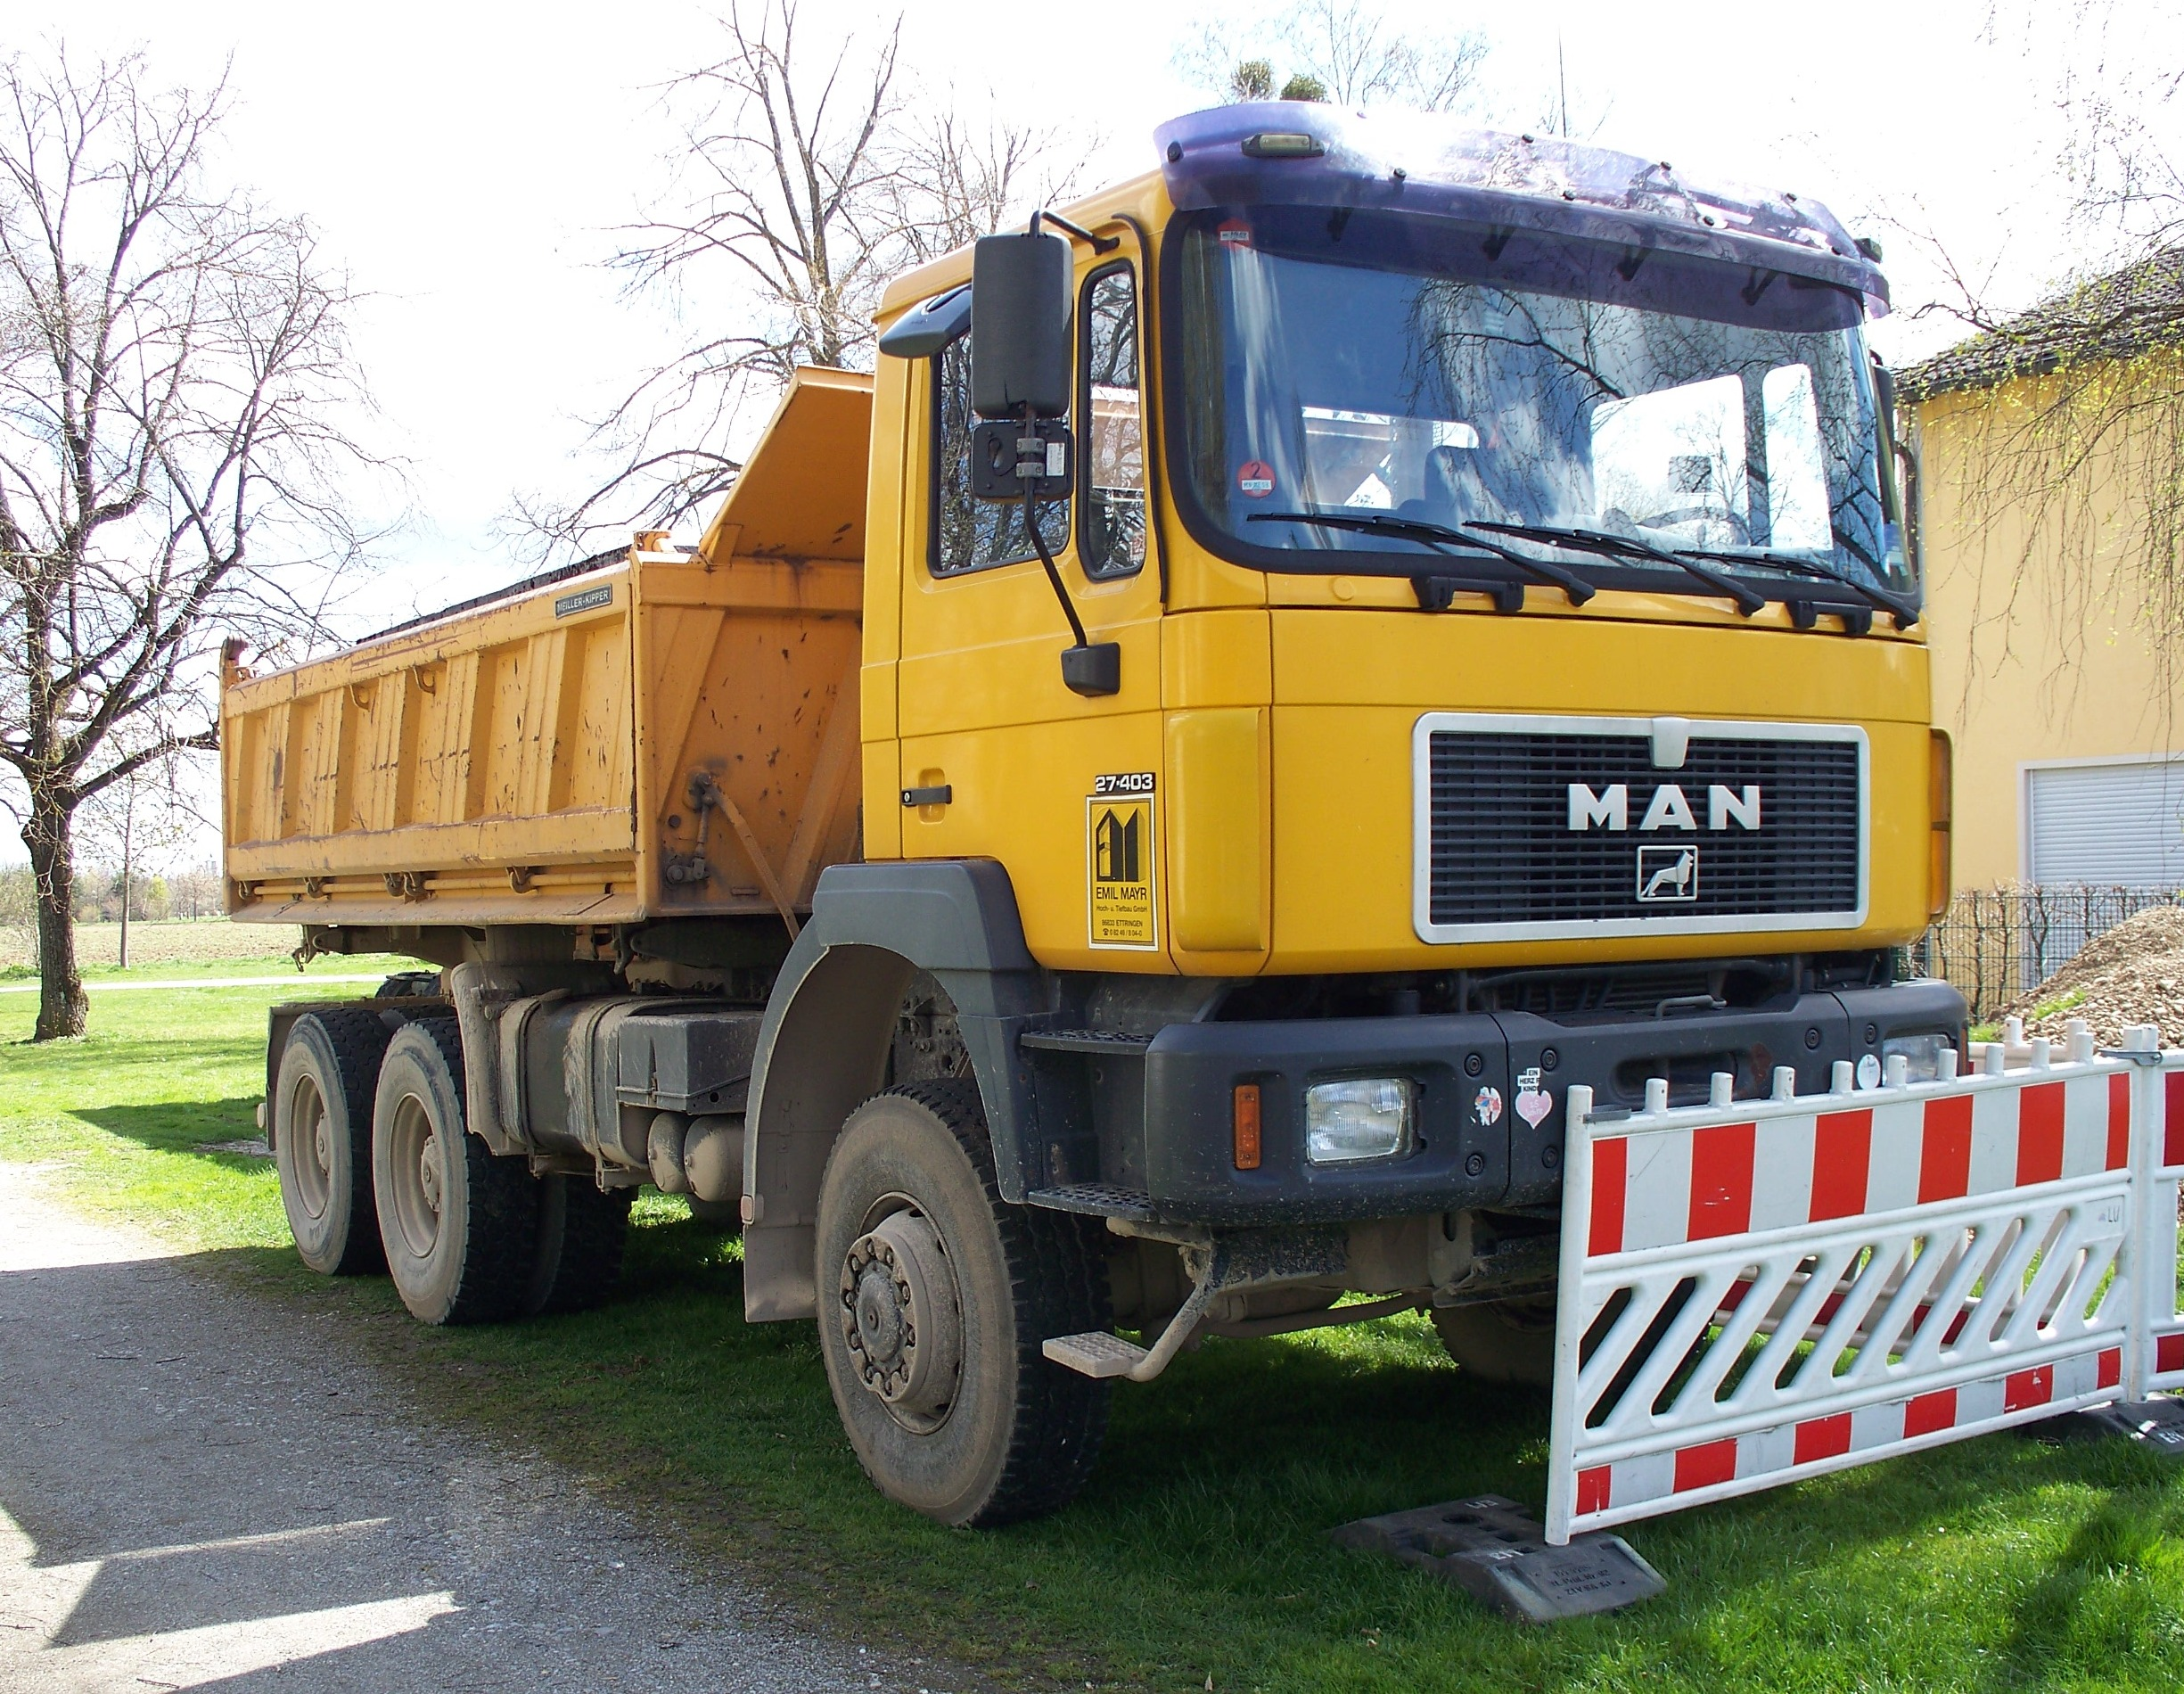 121dumpers moreover Dump Truck further High Risk Straight And Box Trucks further File MAN 27 403 dump truck in Munich in addition Watch. on dump truck dumping